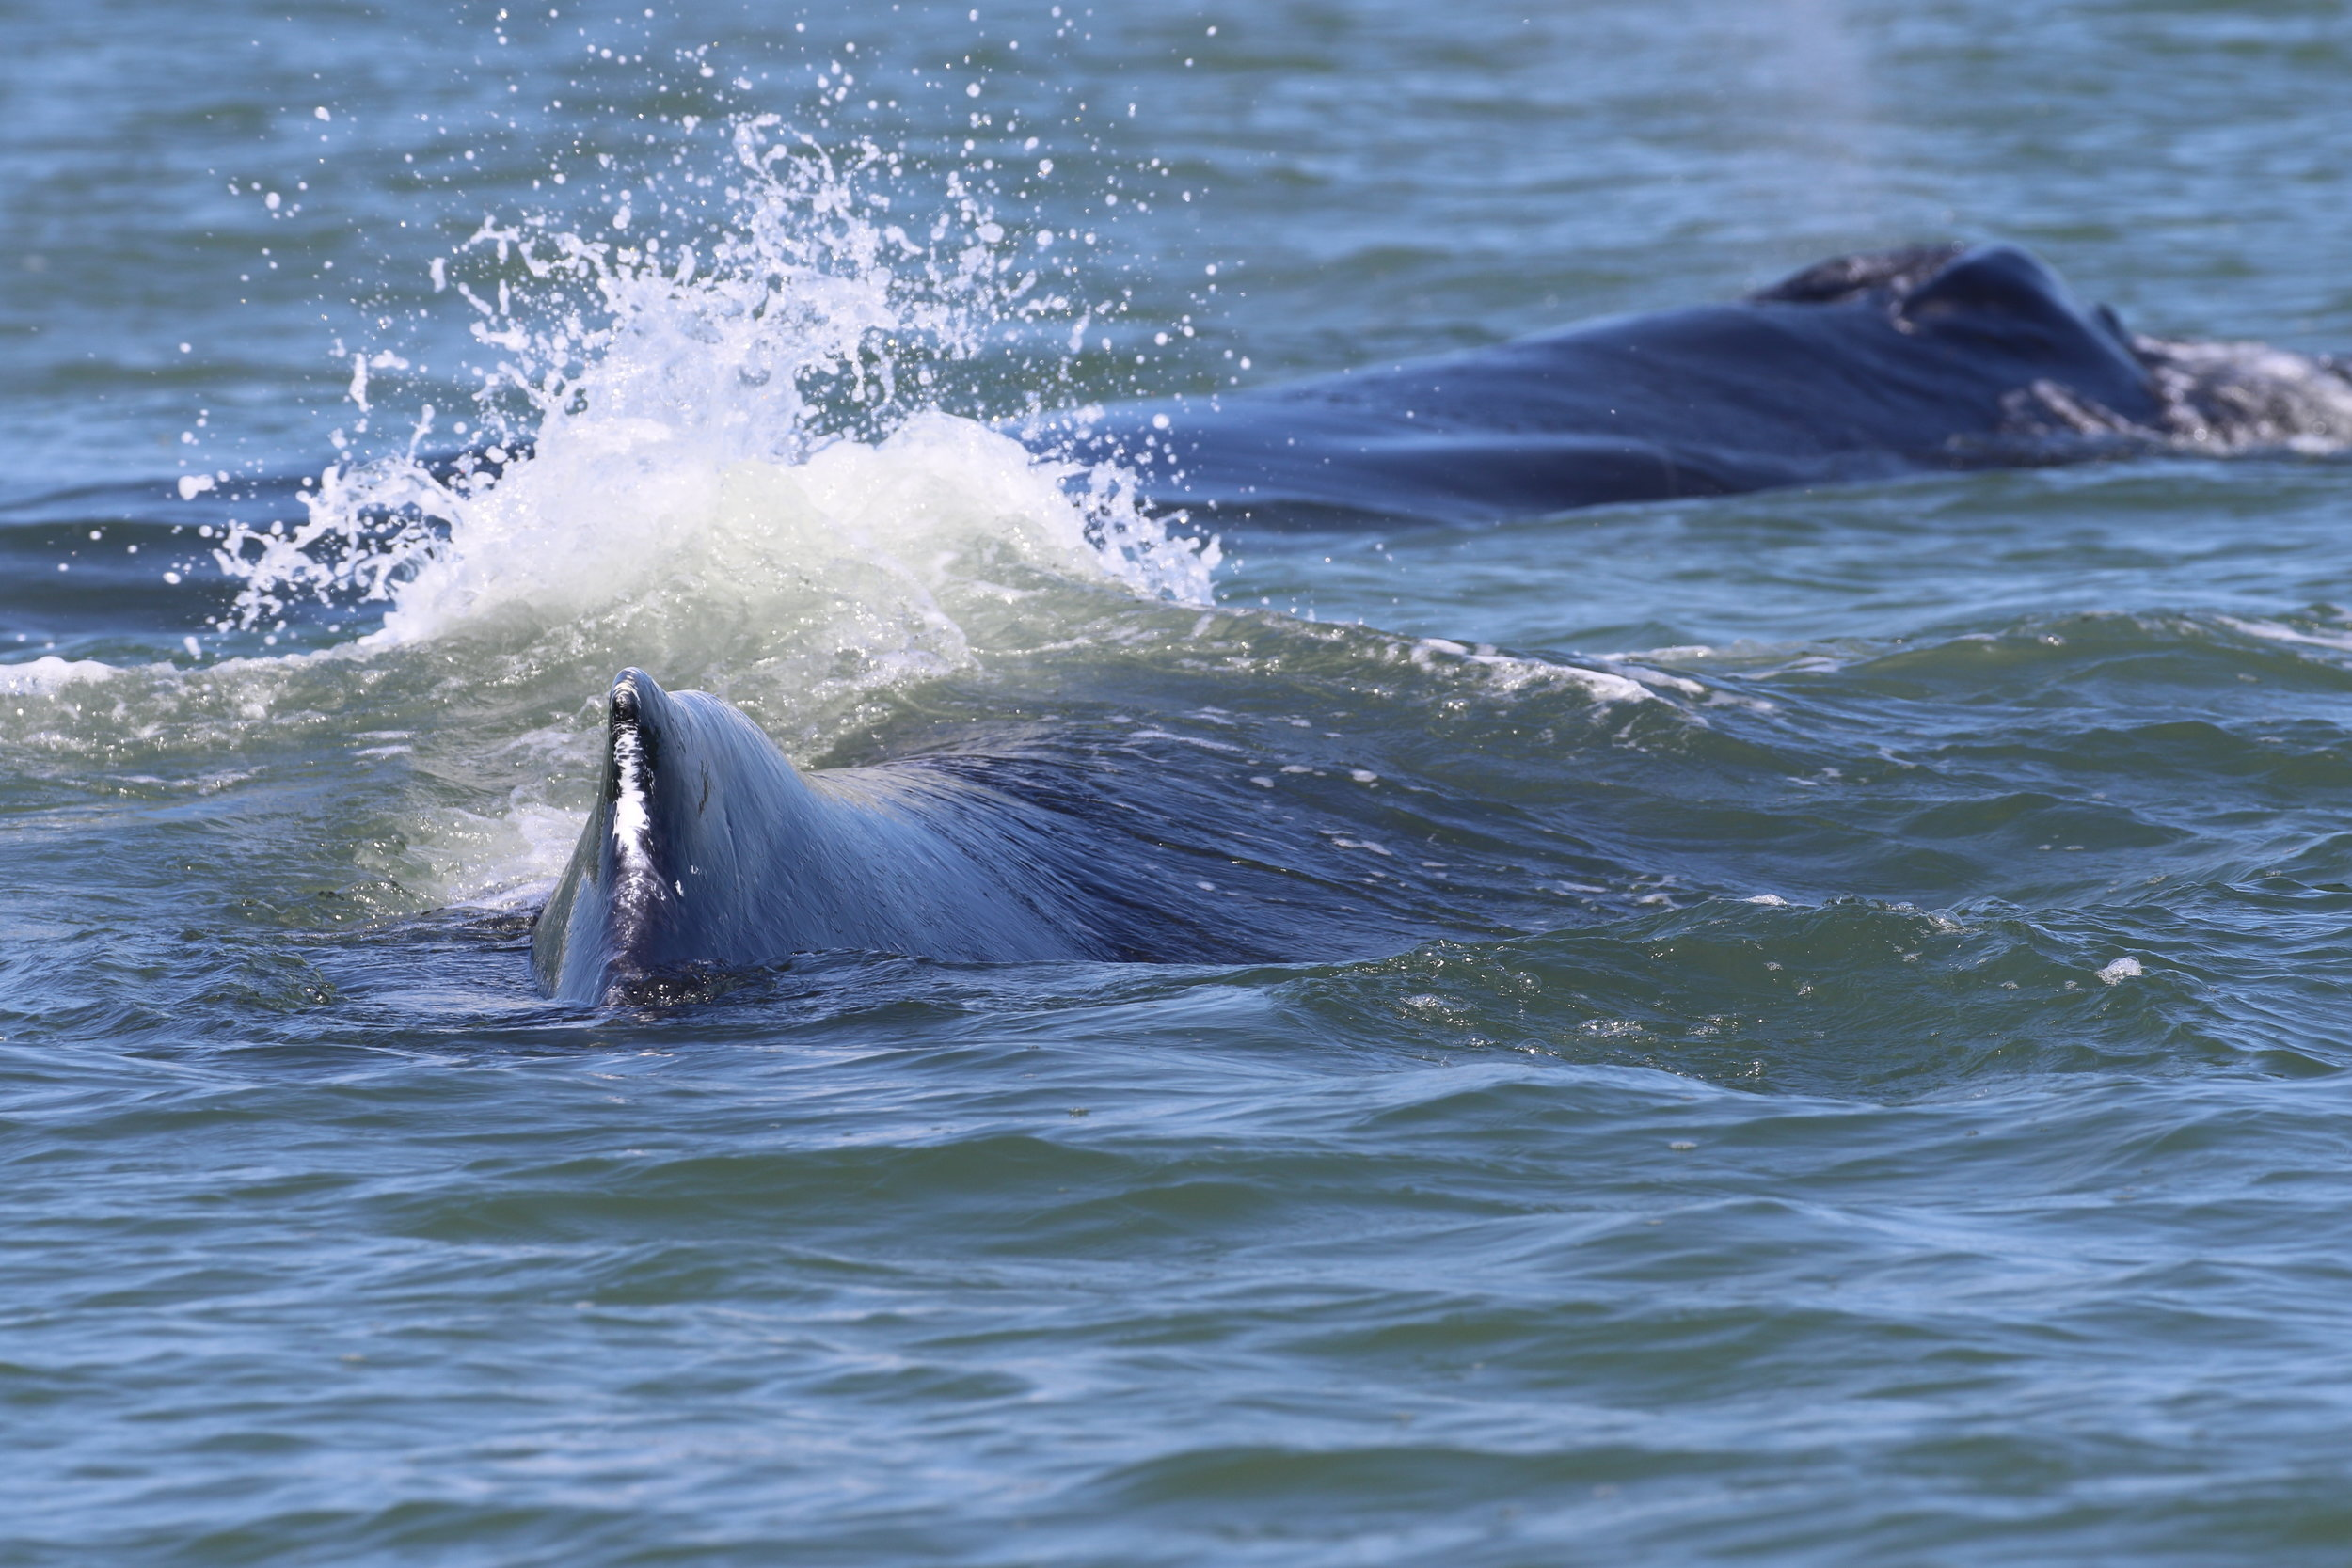 Too many whales for our telephoto lens! Photo by Natalie Reichenbacher (10:30).